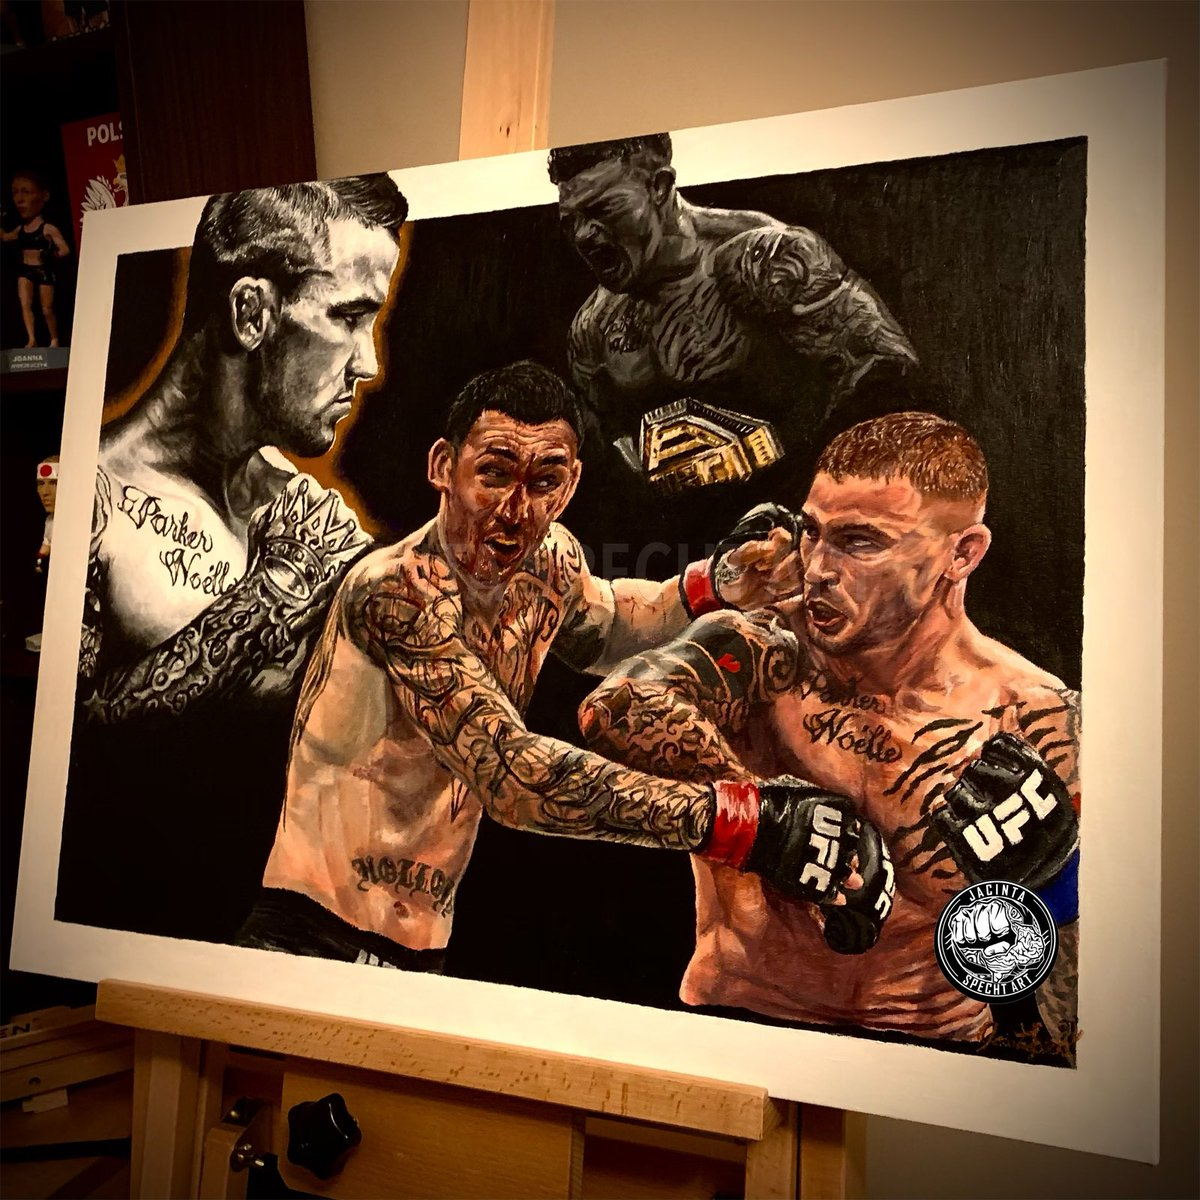 Let's go @DustinPoirier! Huge fan and met you at UFC Calgary! Hoping that you'll see my painting. Love if you guys could tag him! #paidinfull #thediamond #dustinpoirier #UFC257 @espnmma @ufc